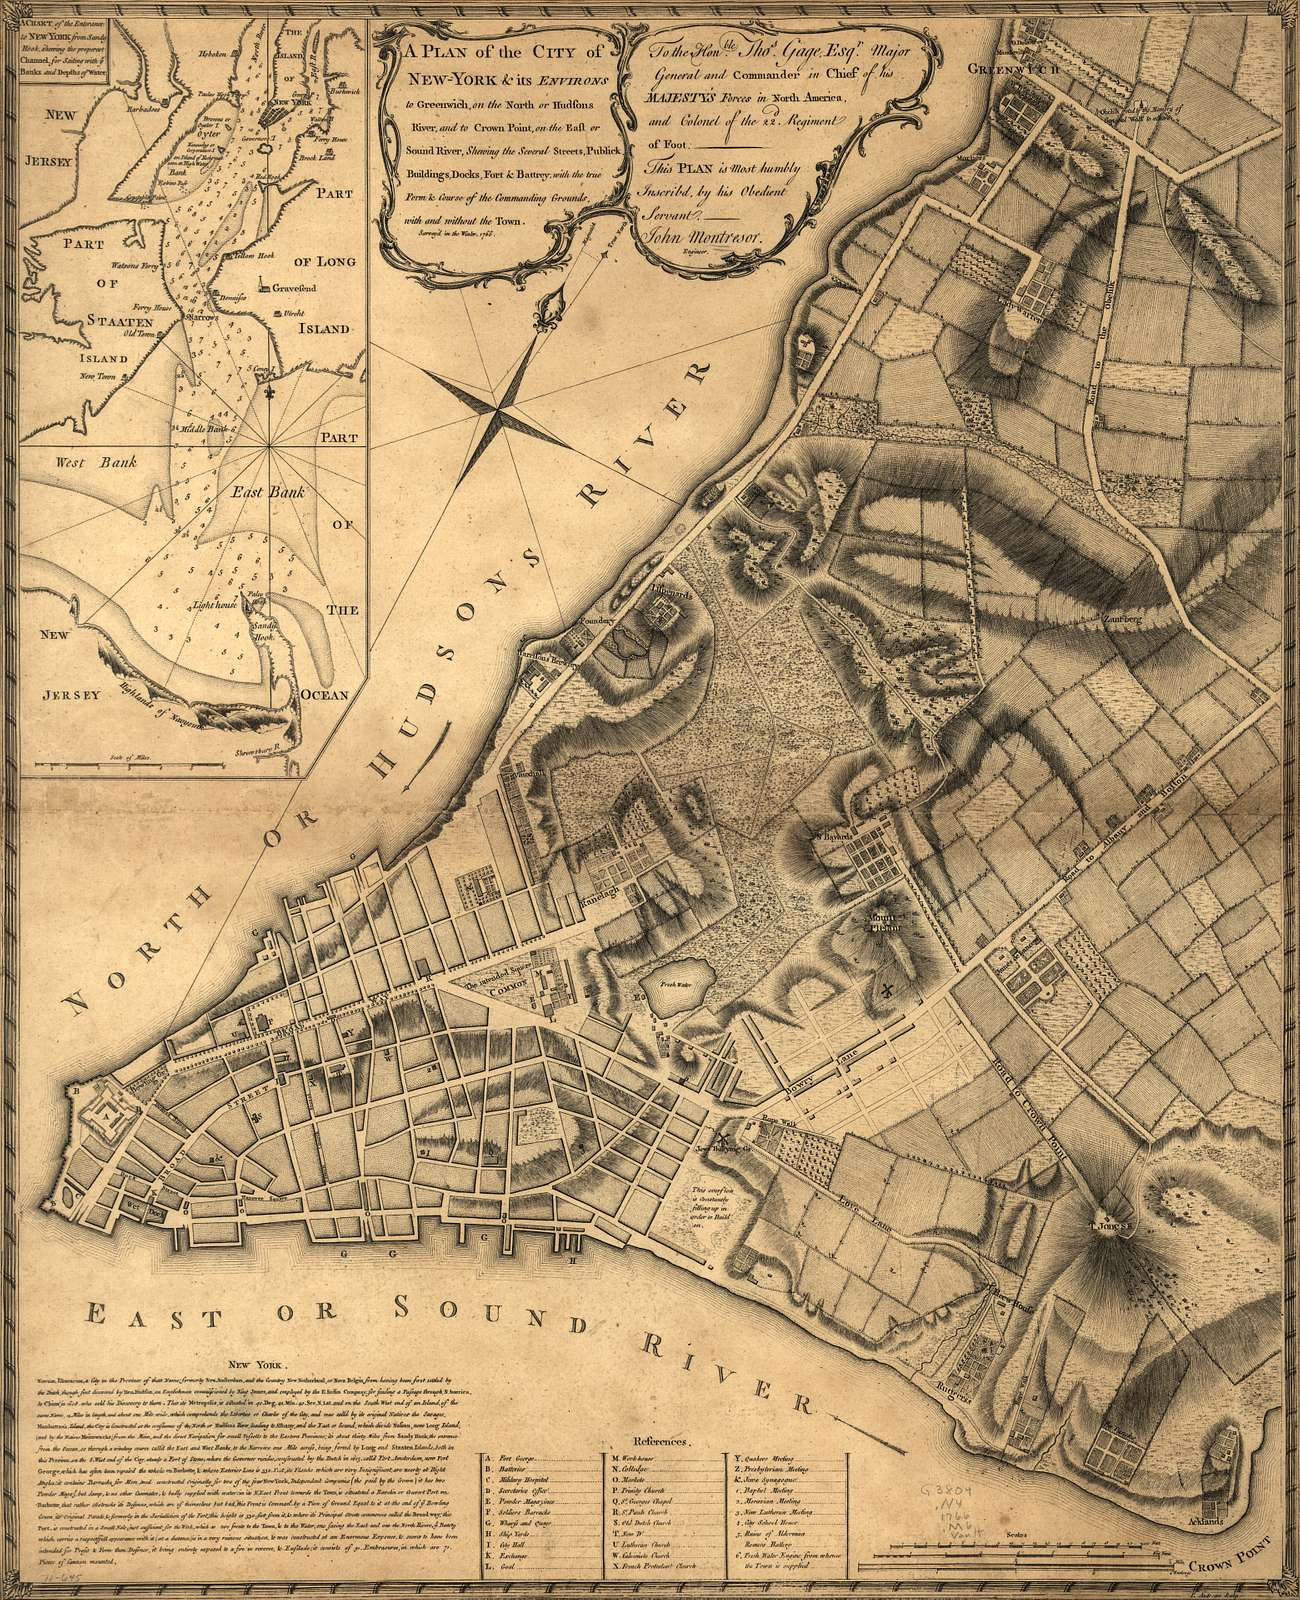 A plan of the city of New-York & its environs to Greenwich, on the north or Hudsons River, and to Crown Point, on the east or Sound River, shewing the several streets, publick buildings, docks, fort & battery, with the true form & course of the commanding grounds, with and without the town.